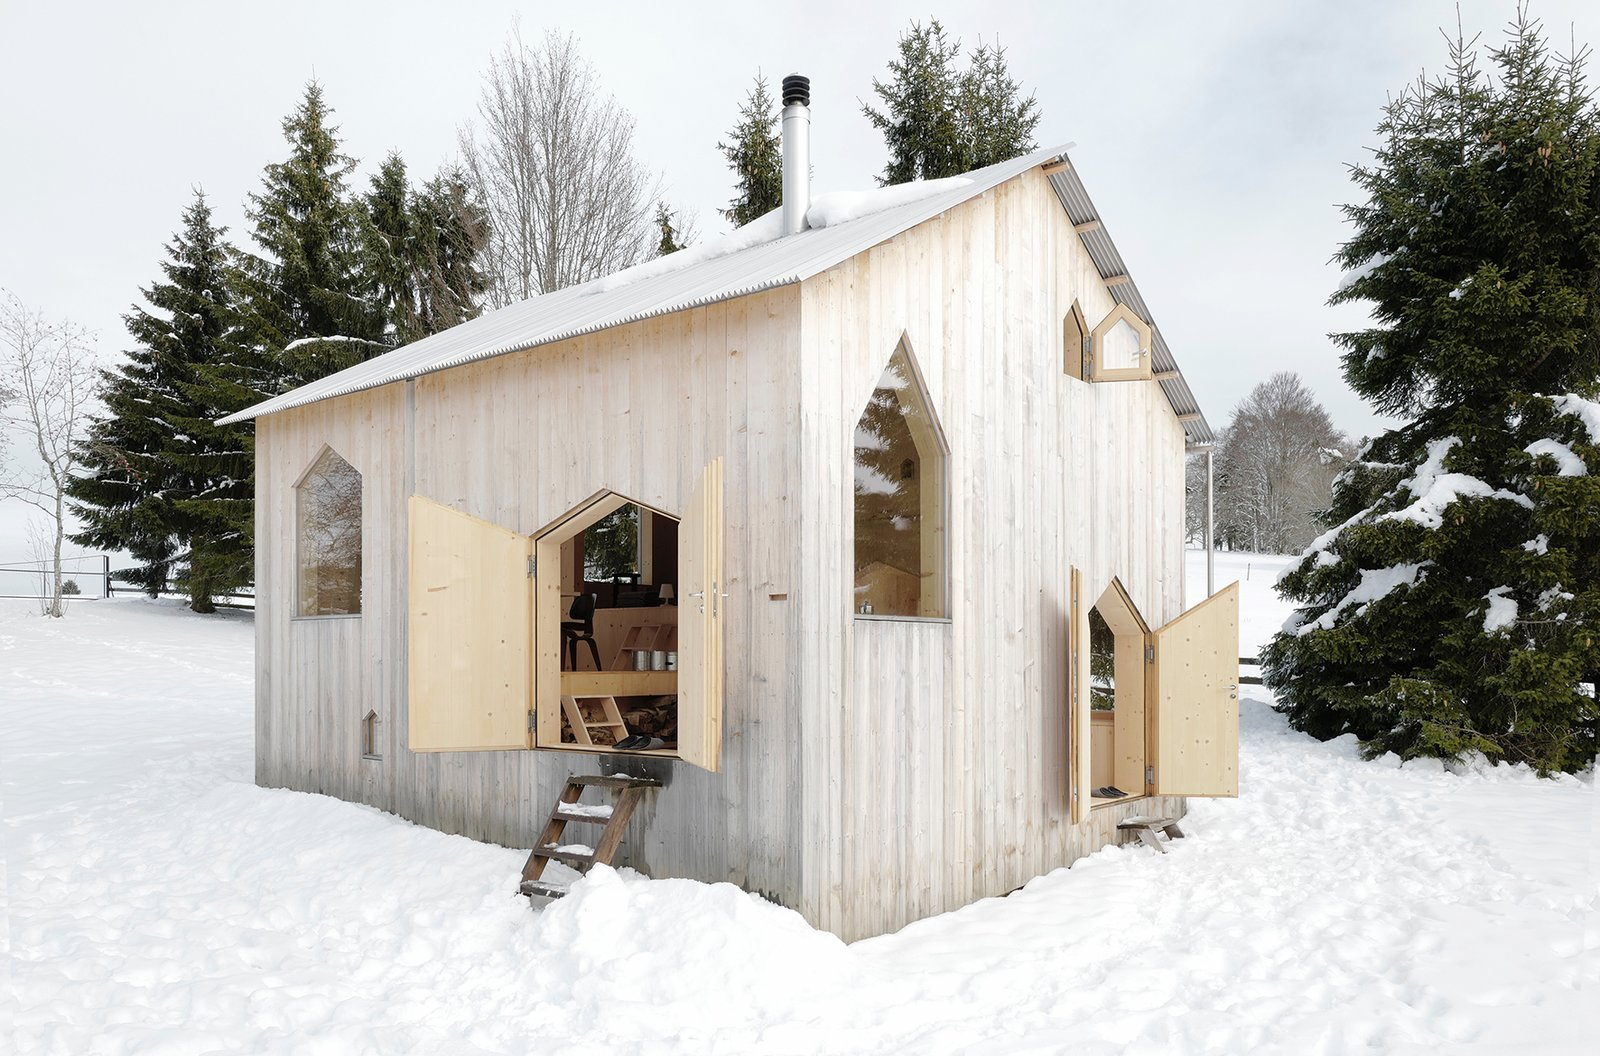 Exterior, Wood, Cabin, Metal, Gable, and Small Home The roof is composed of a single sheet of folded stainless steel, and features a gutter on one side for rainwater harvesting.    Best Exterior Metal Wood Small Home Cabin Photos from An Outdated Swiss Chalet Is Treated to a Playful New Look